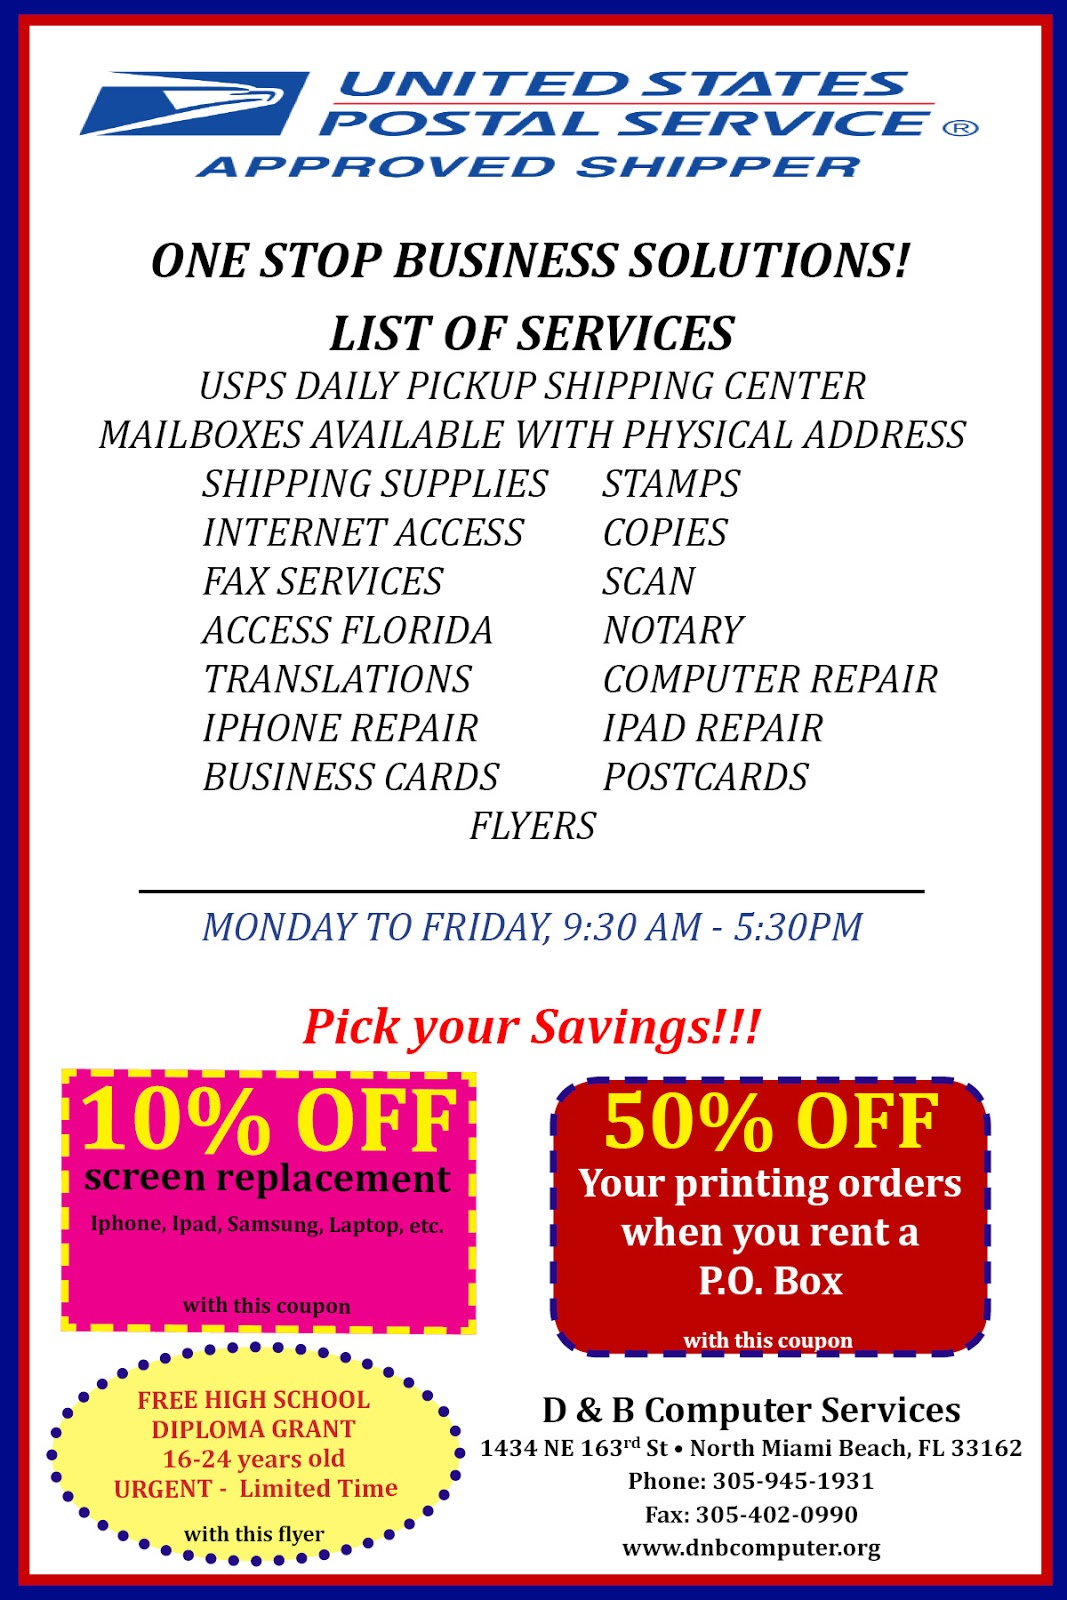 D & B Computer Services is onet stop-shop in North Miami Beach